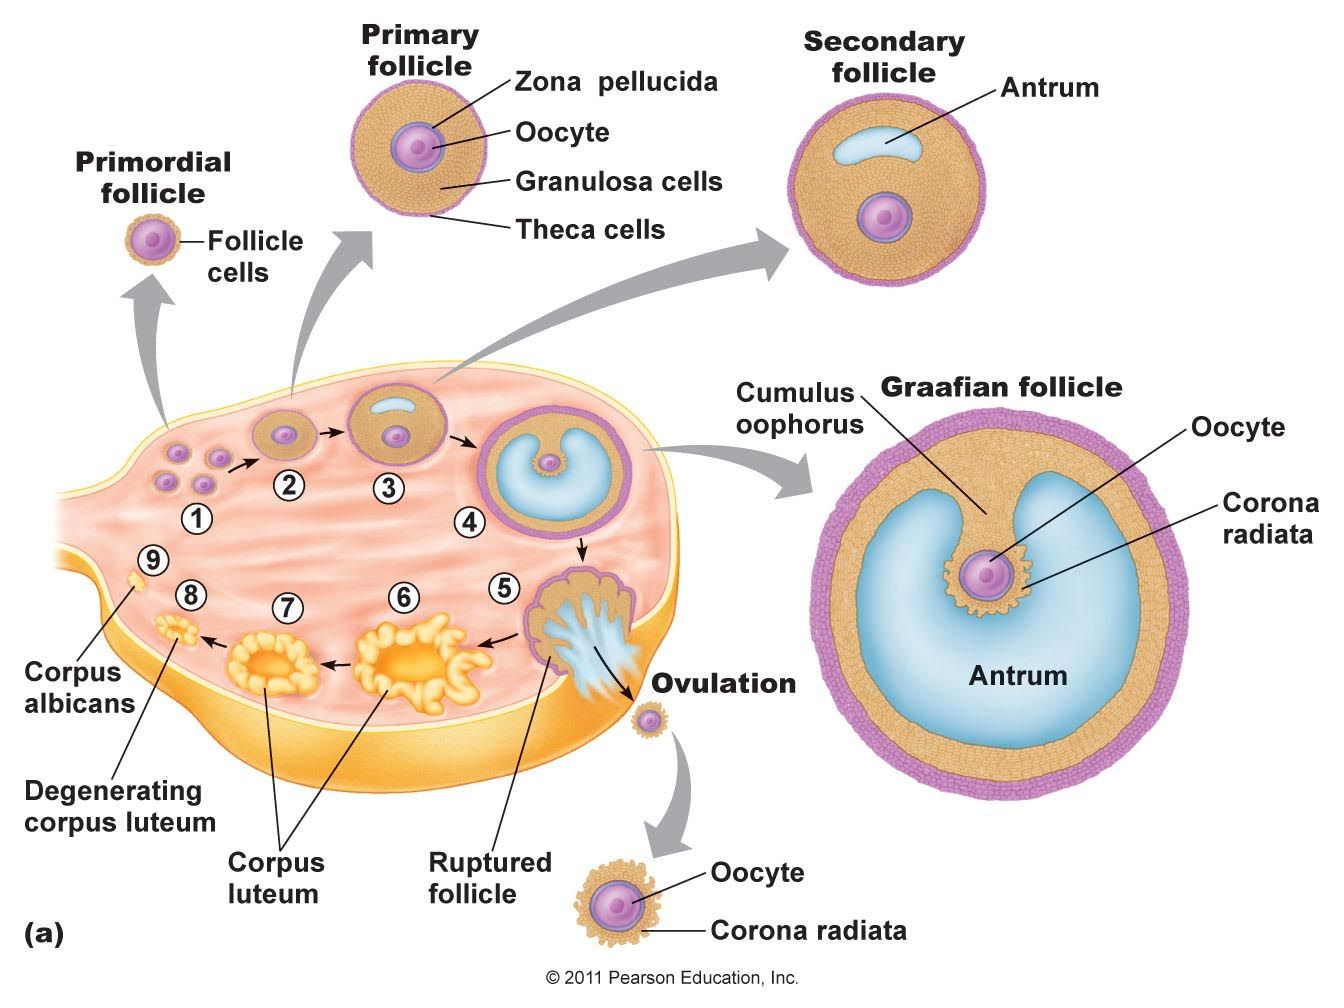 hight resolution of structure of ovary in female labeled structure of ovary human anatomy female reproductive